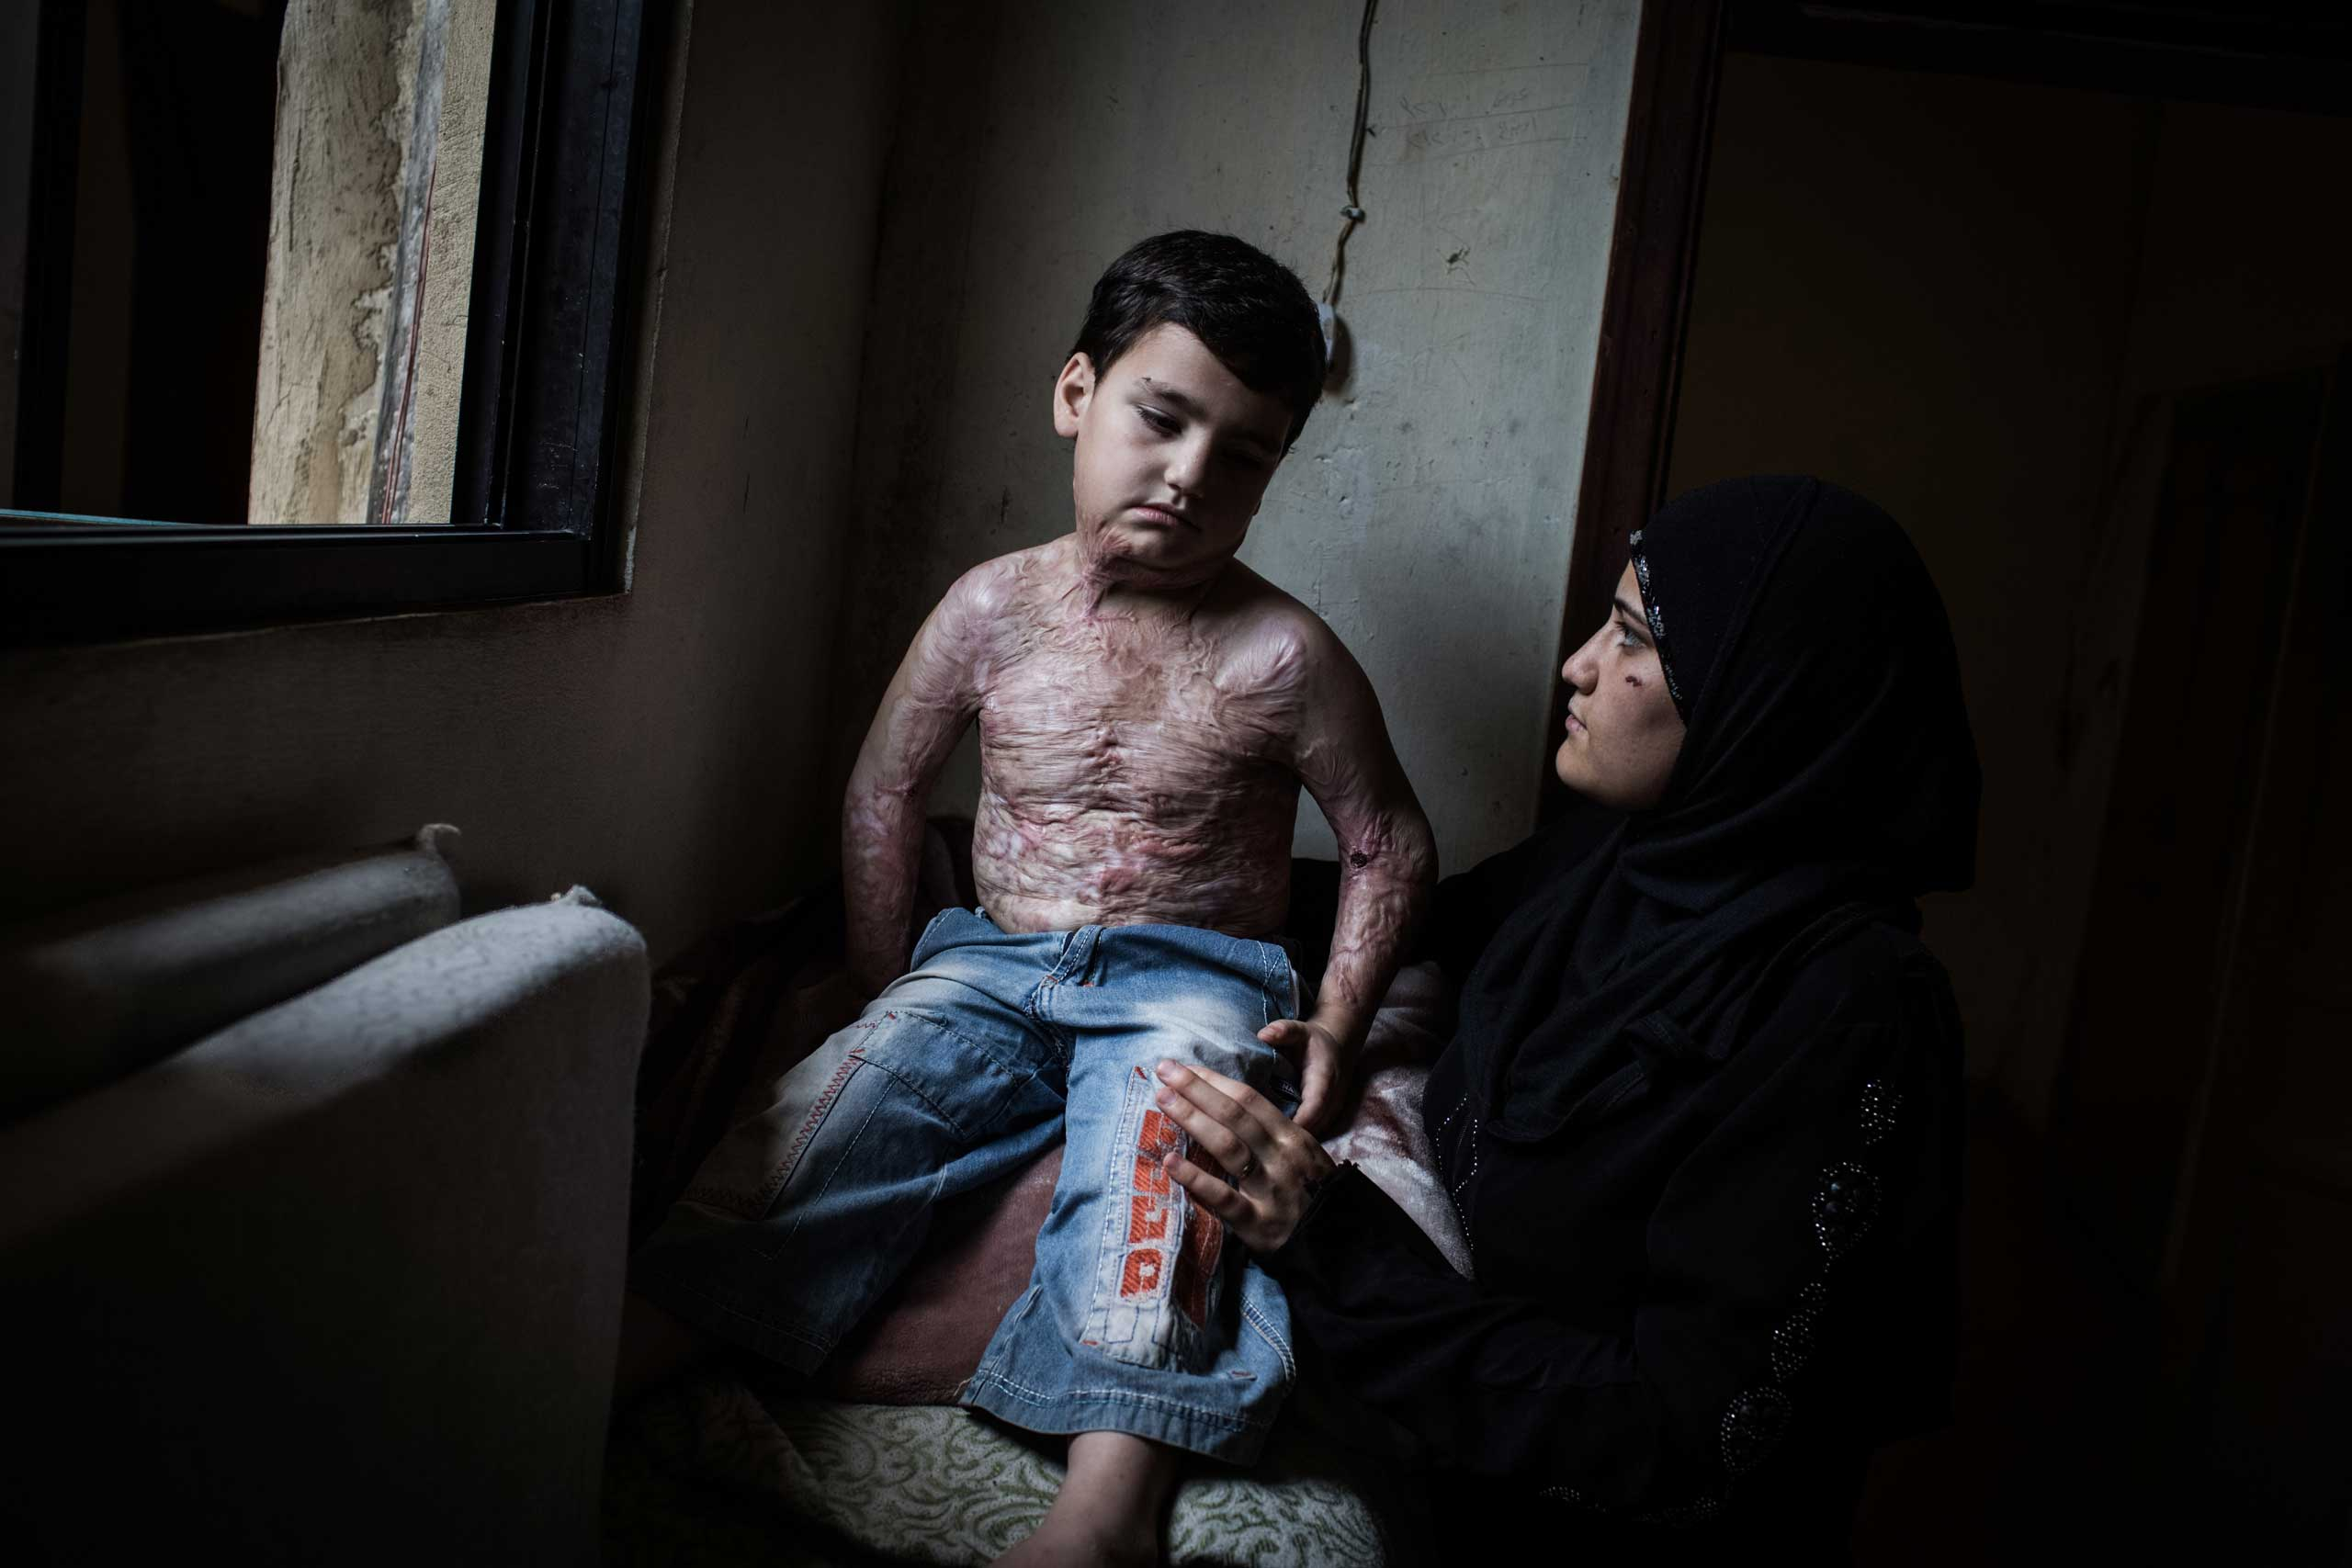 Mohammed, 7, with his mother at a shelter in Donnyeh, Lebanon, June 27, 2014. He was burned by shelling in Homs two years ago; he spent a year getting wounds cleaned and needs several operations and skin grafts.